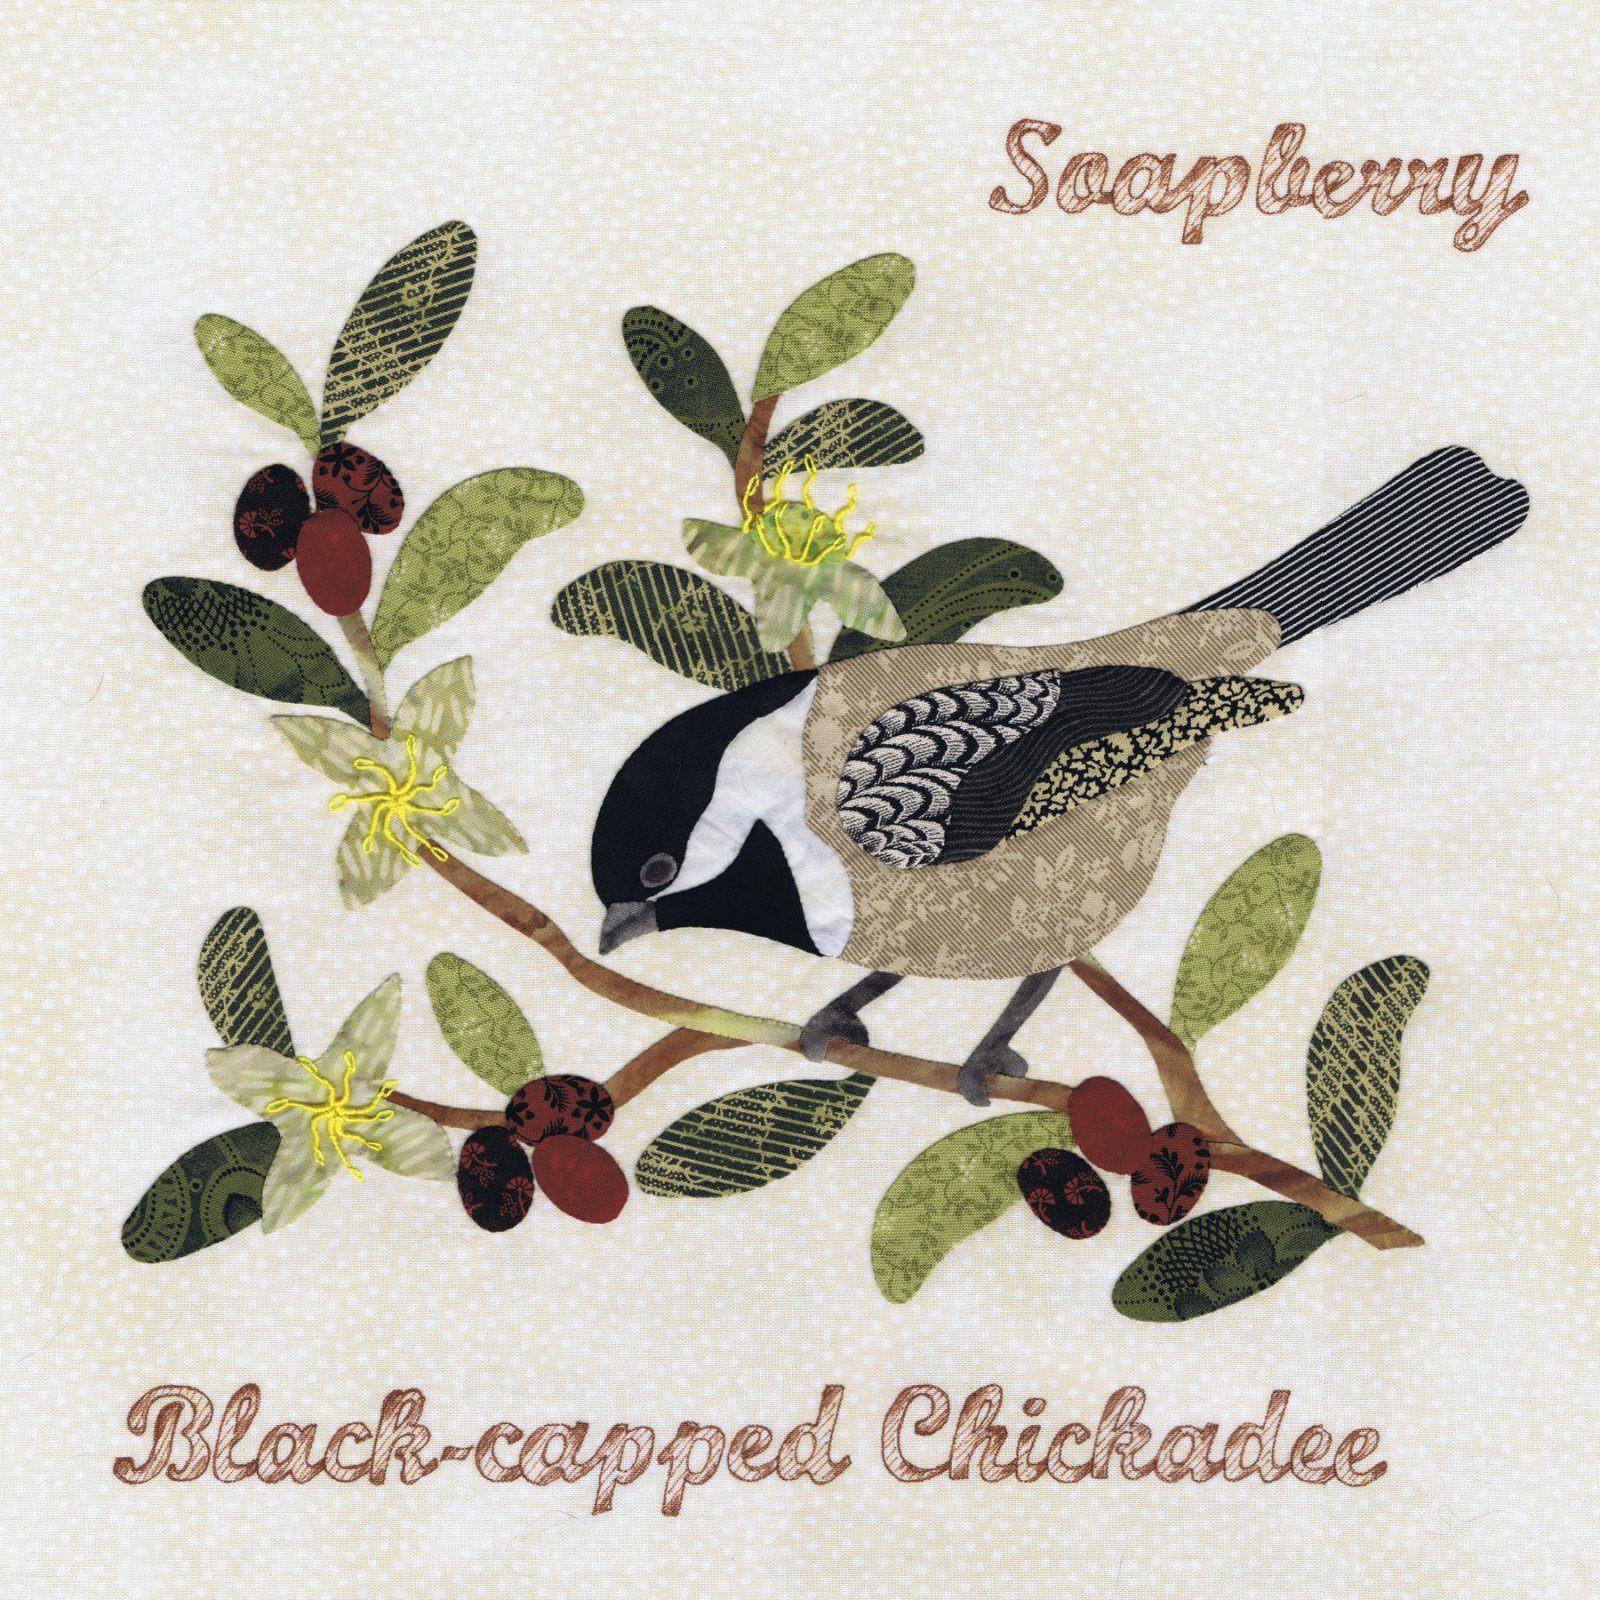 P3-1504 Black-capped Chickadee & Soapberry